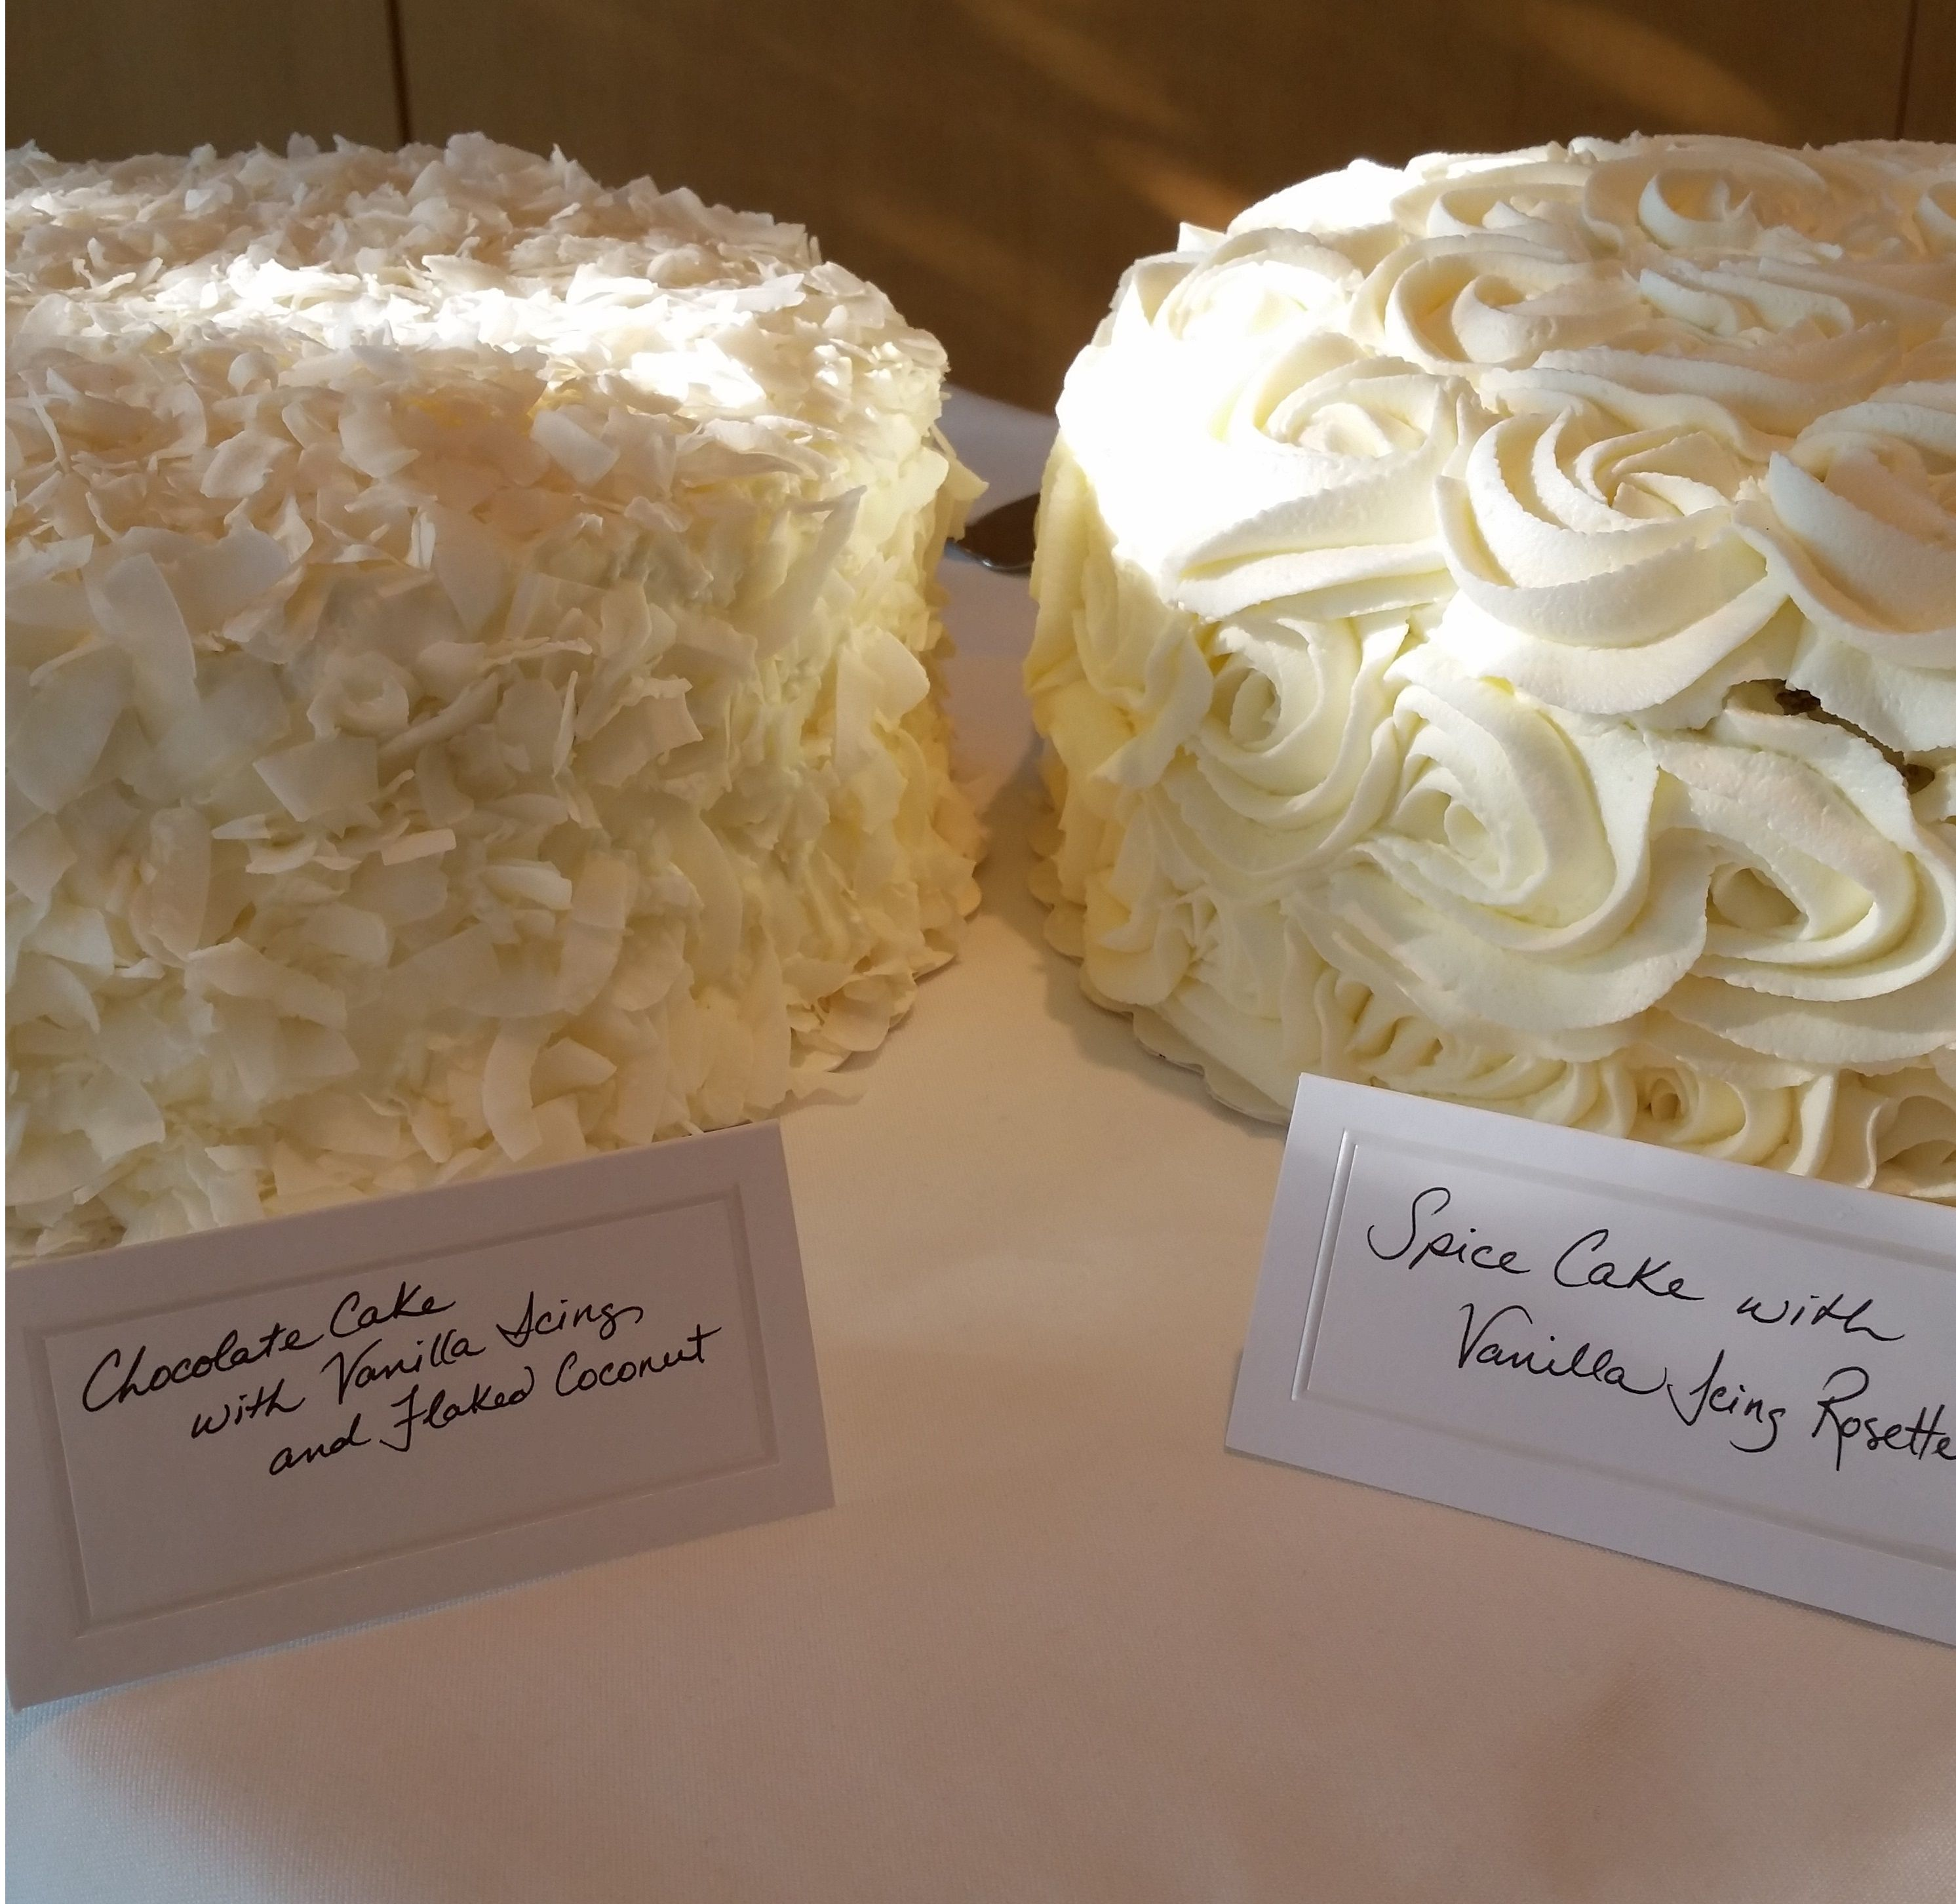 His & Hers Cakes :)